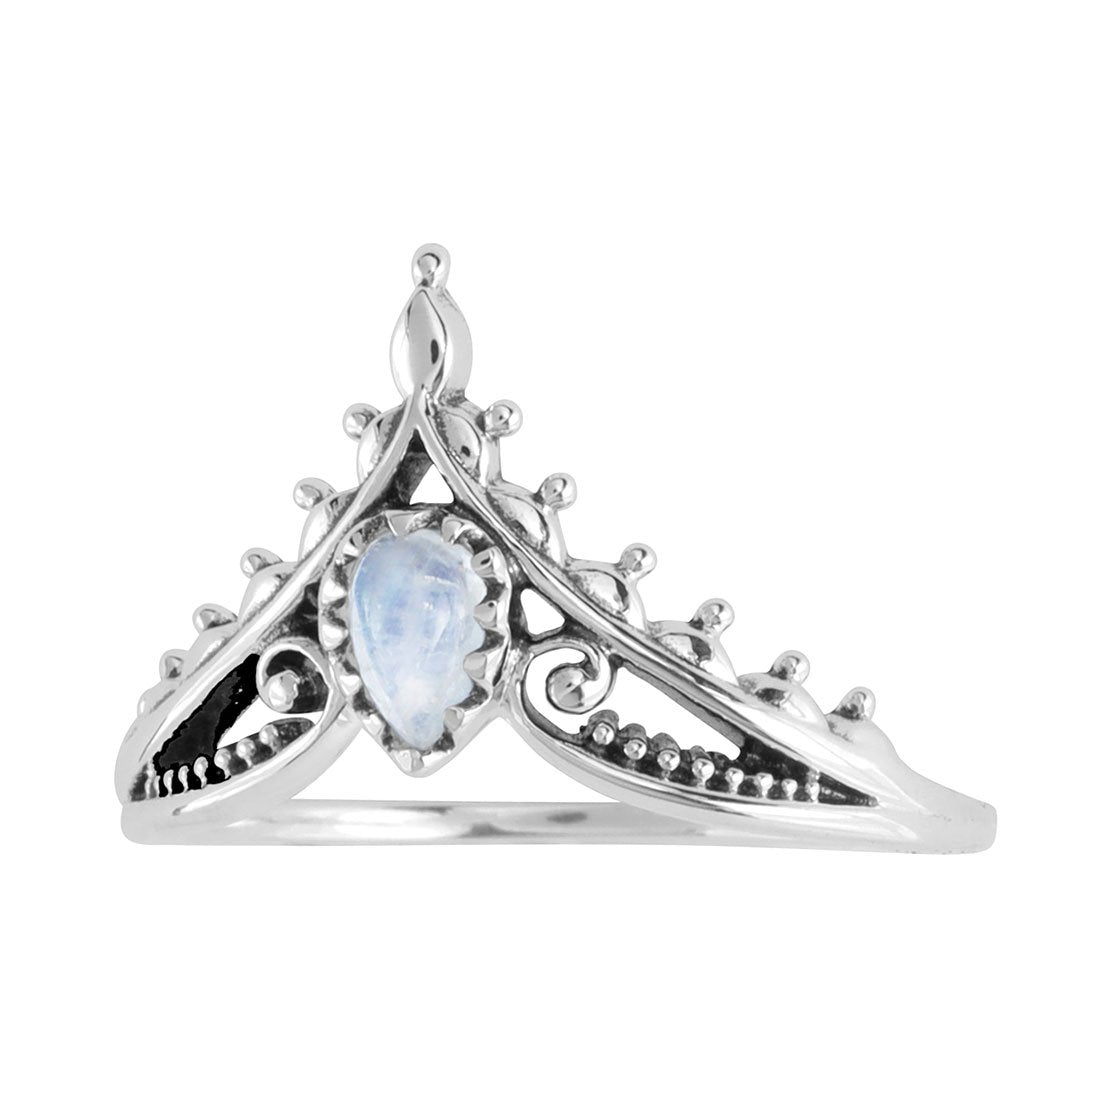 Sterling Silver Microcosm Rainbow Moonstone Ring